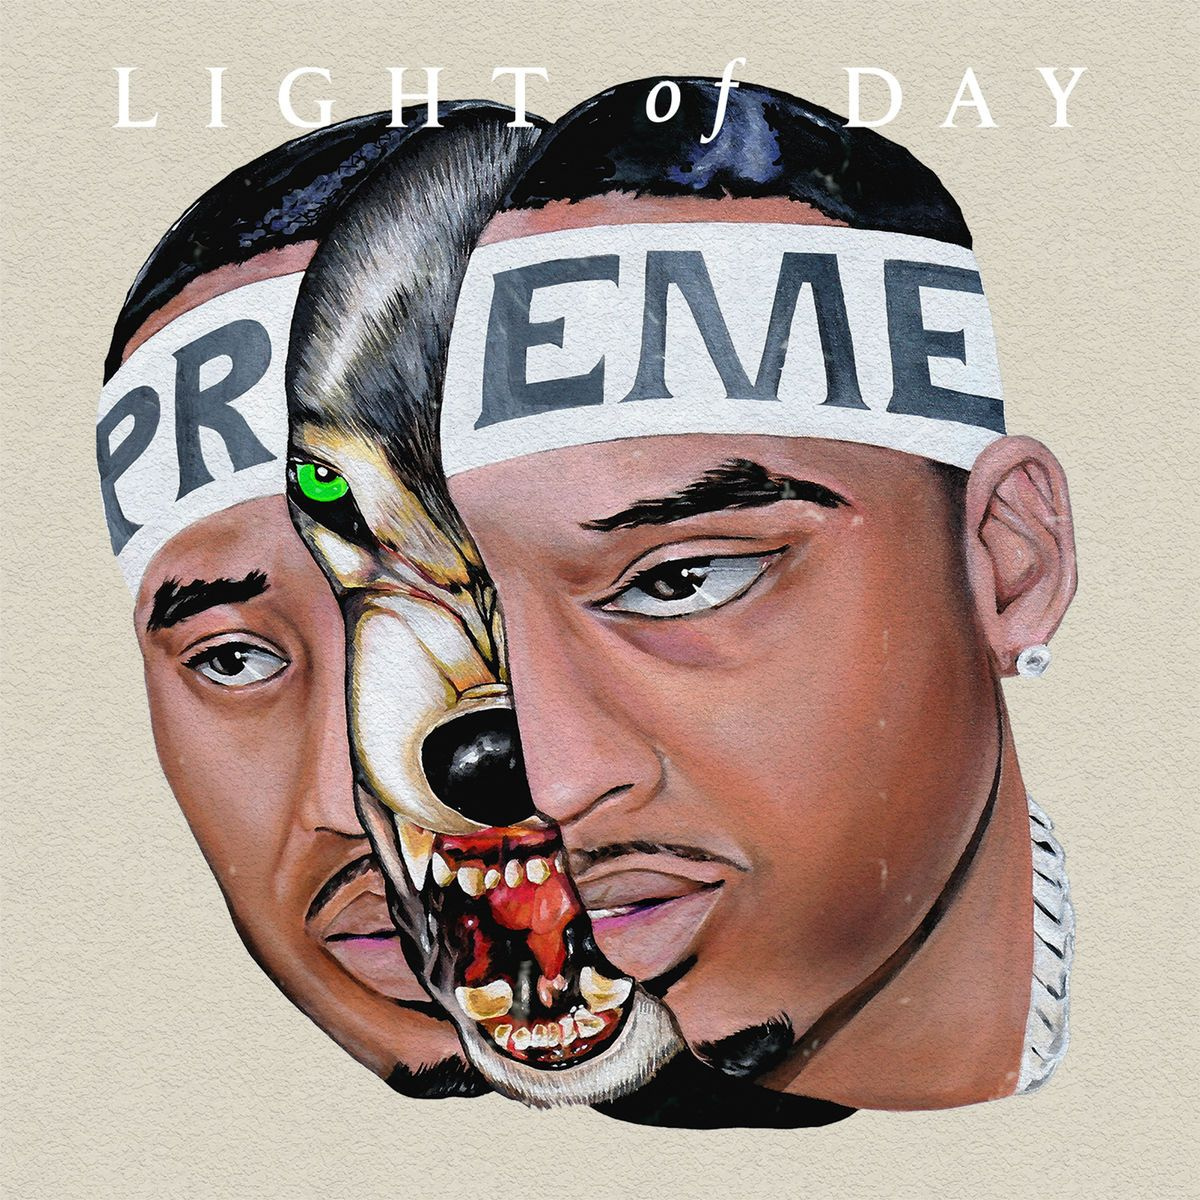 """Preme Releases """"Light Of Day"""" Album Featuring Post Malone, Lil Wayne, YG & More"""